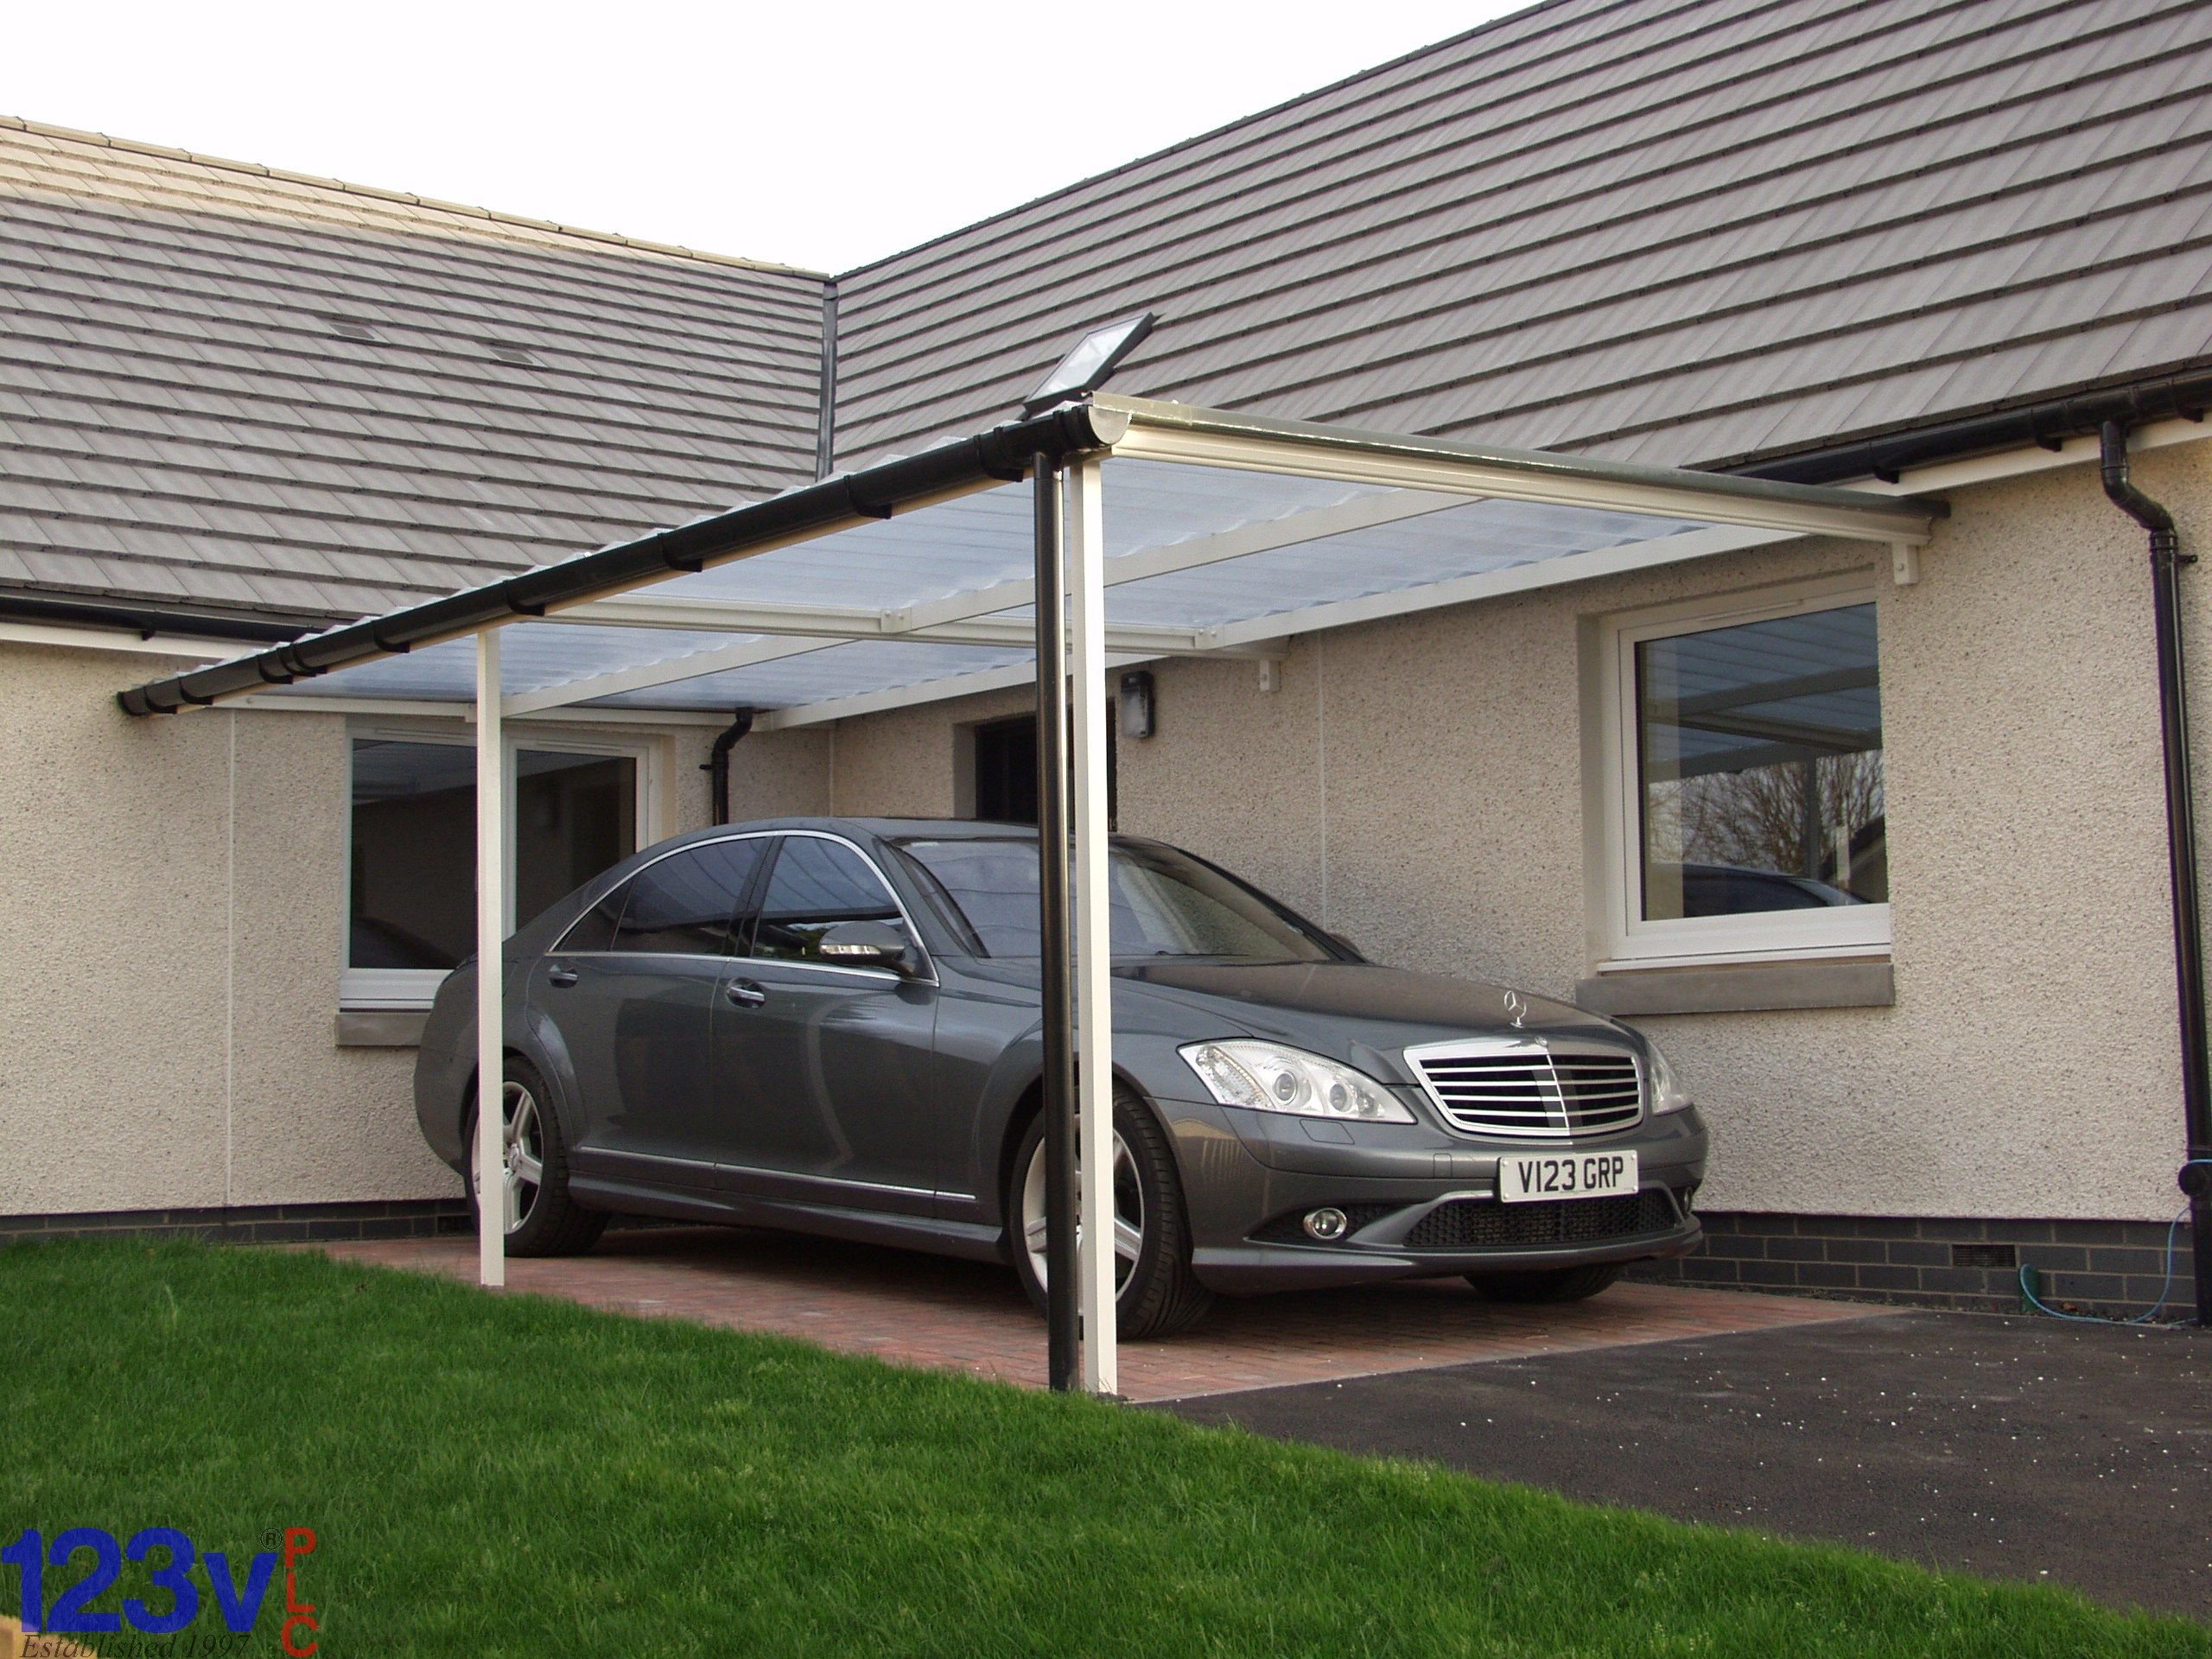 123v carport canopy neat simple practical in out of the house to the car in the dry. Black Bedroom Furniture Sets. Home Design Ideas